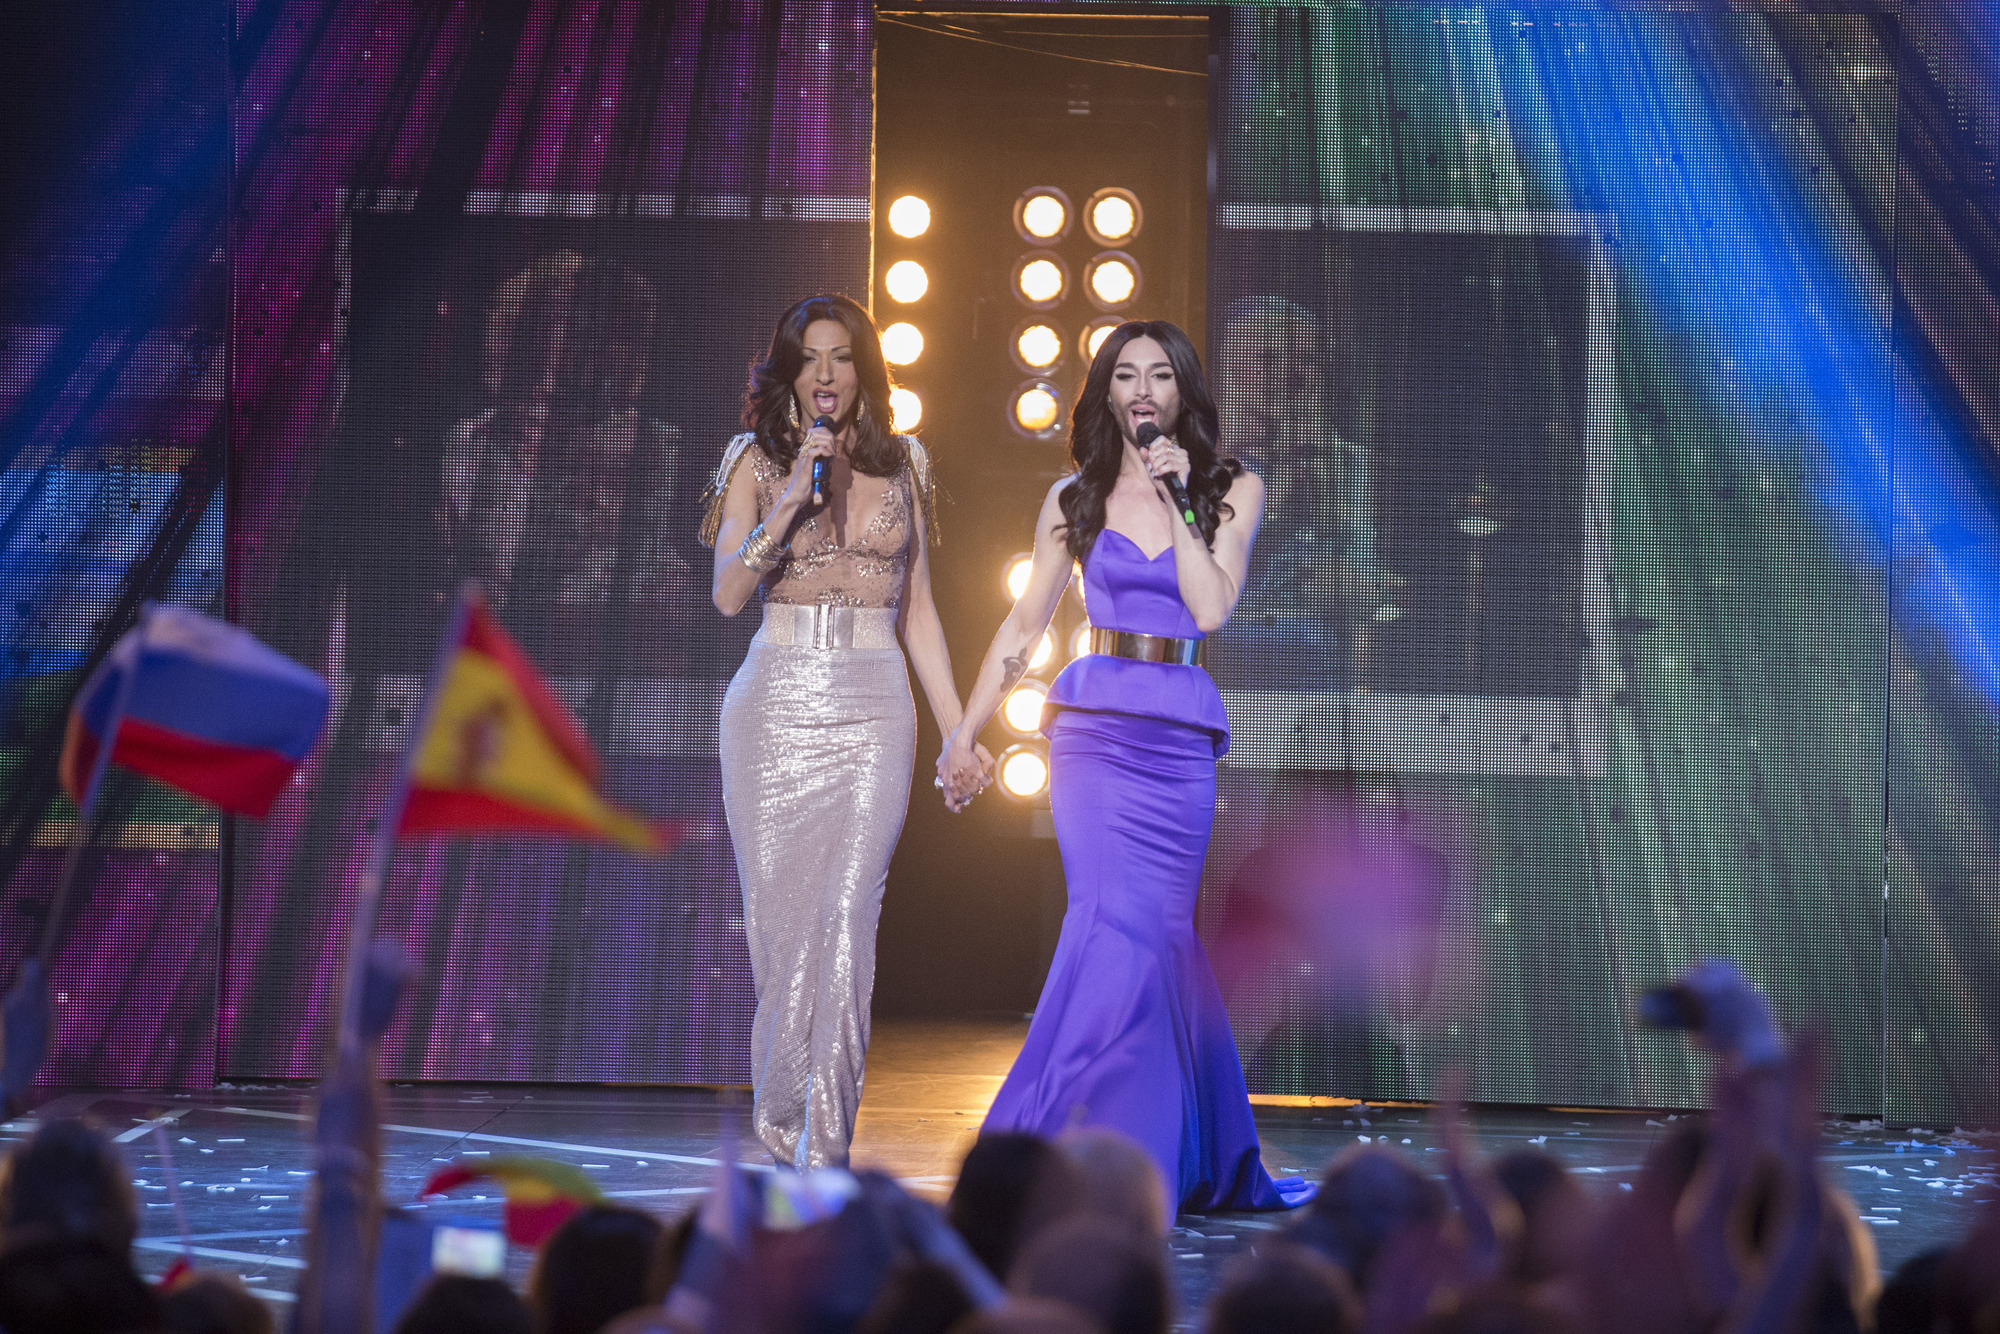 Conchita Wurst and Dana International held hands at the Eurovision anniversary concert – and it was an awesome moment